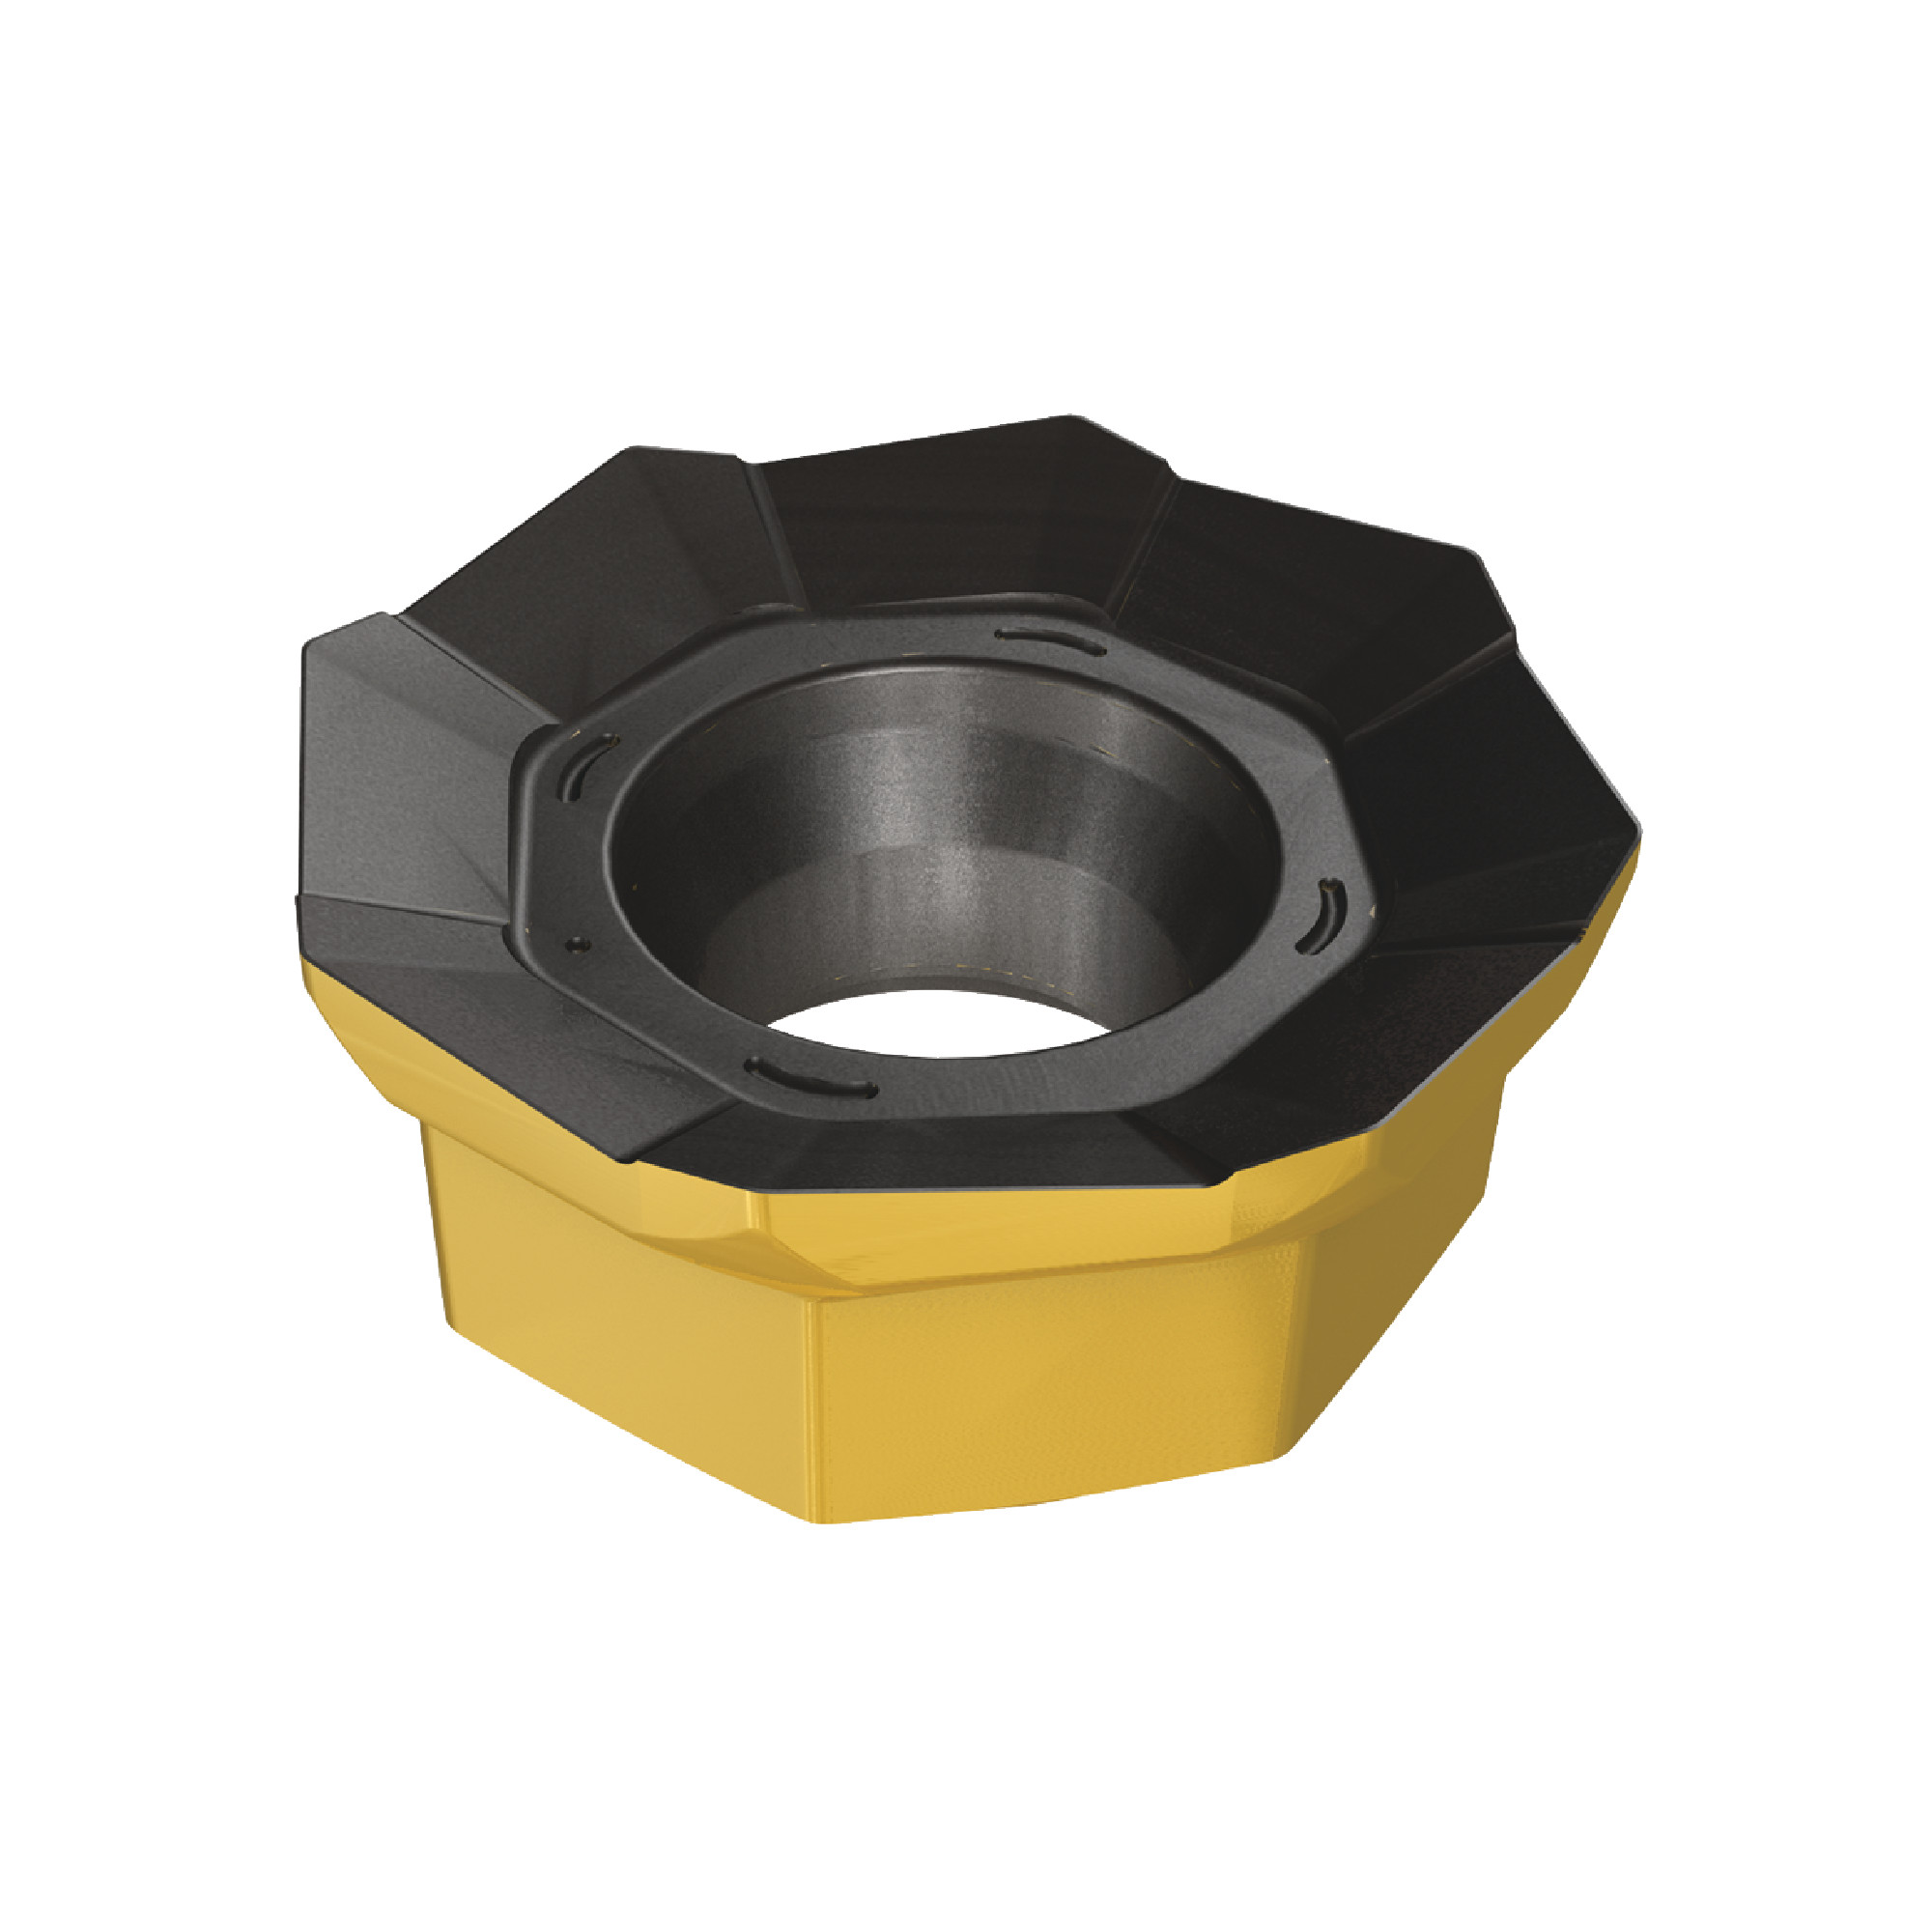 ISCAR - OXMT 050705-R-HP IC830 Octagon / INDEXABLE Carbide MILLING INSERT